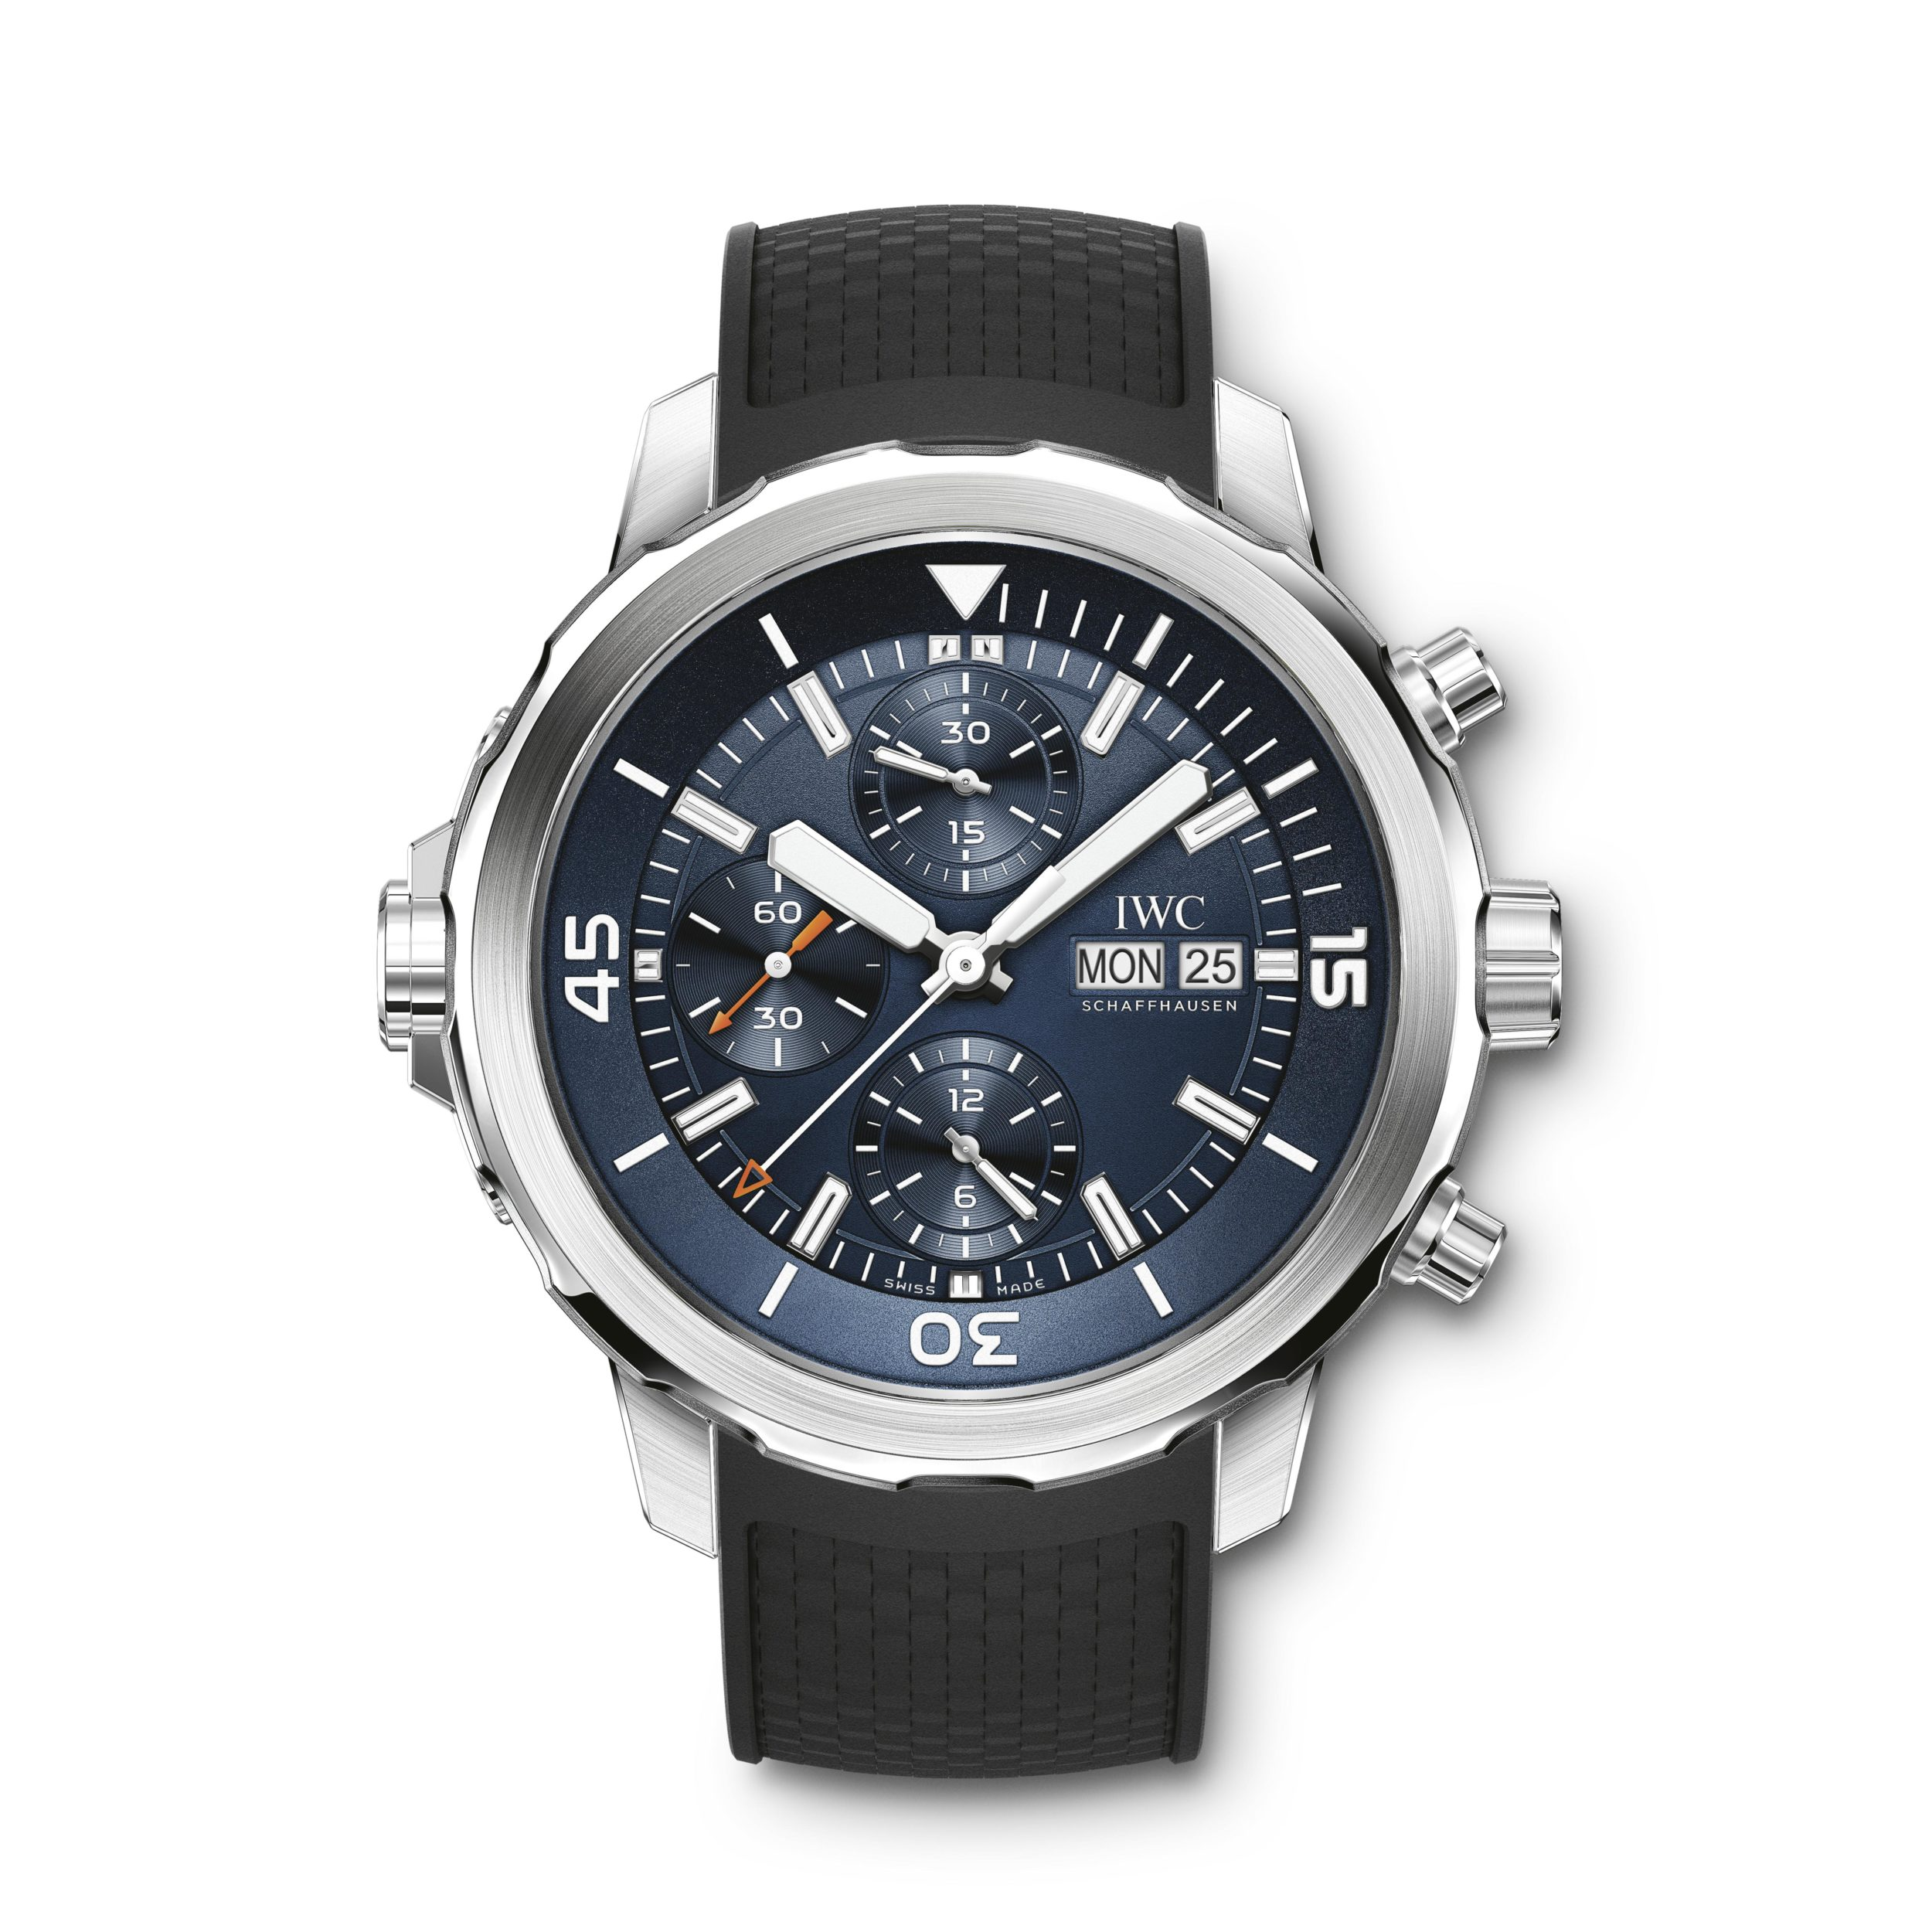 IW376805 Aquatimer Chronograph Edition Expedition Jacques-Yves Cousteau